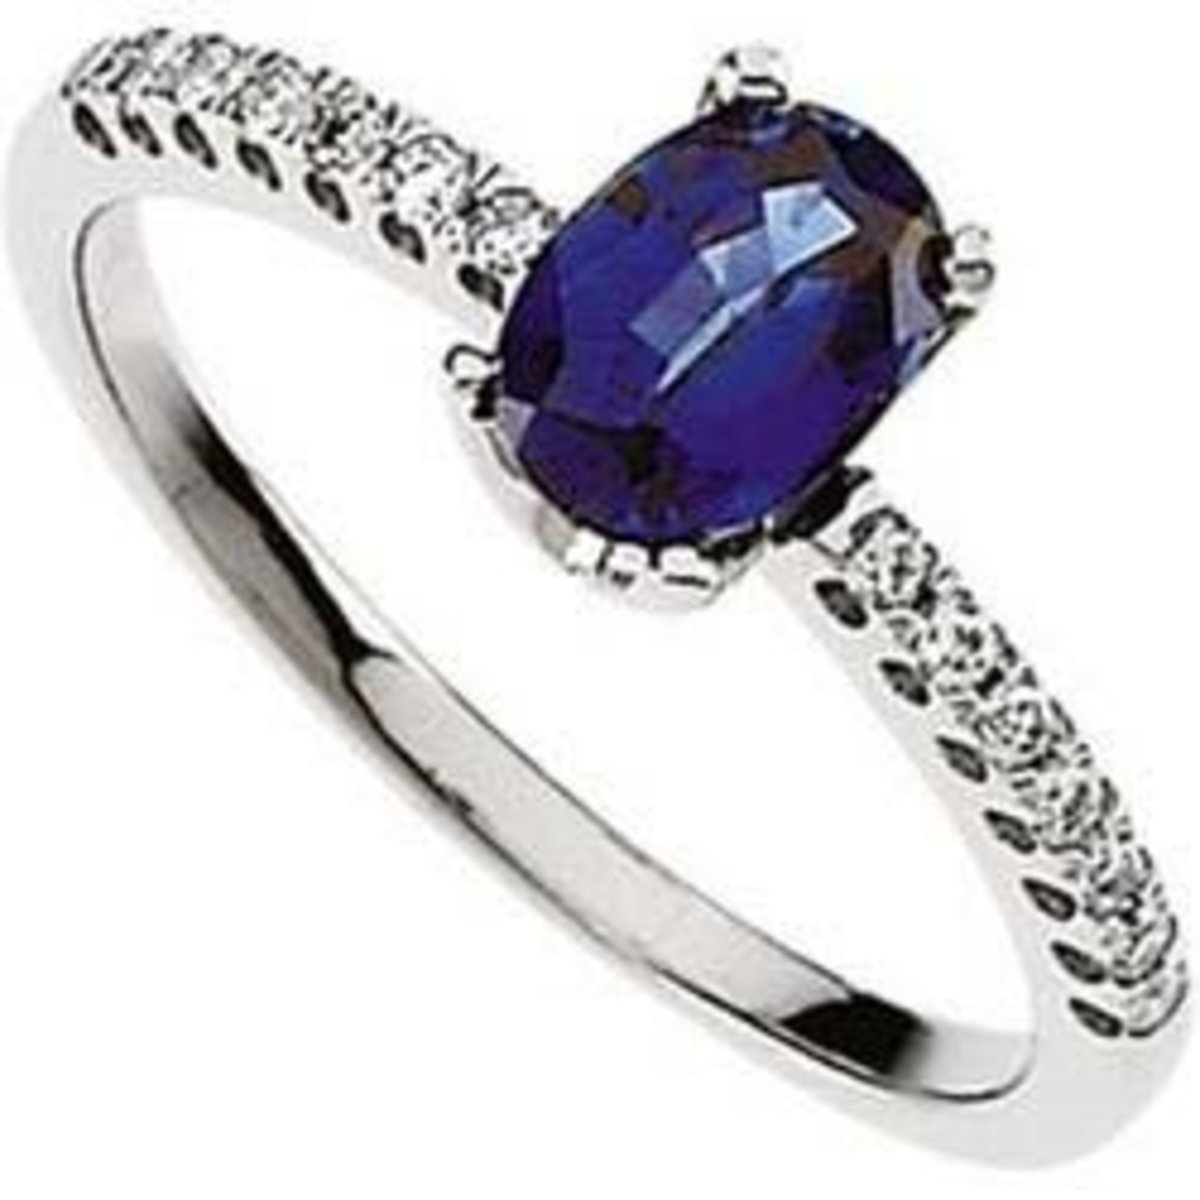 Oval solitaire sapphire engagement ring